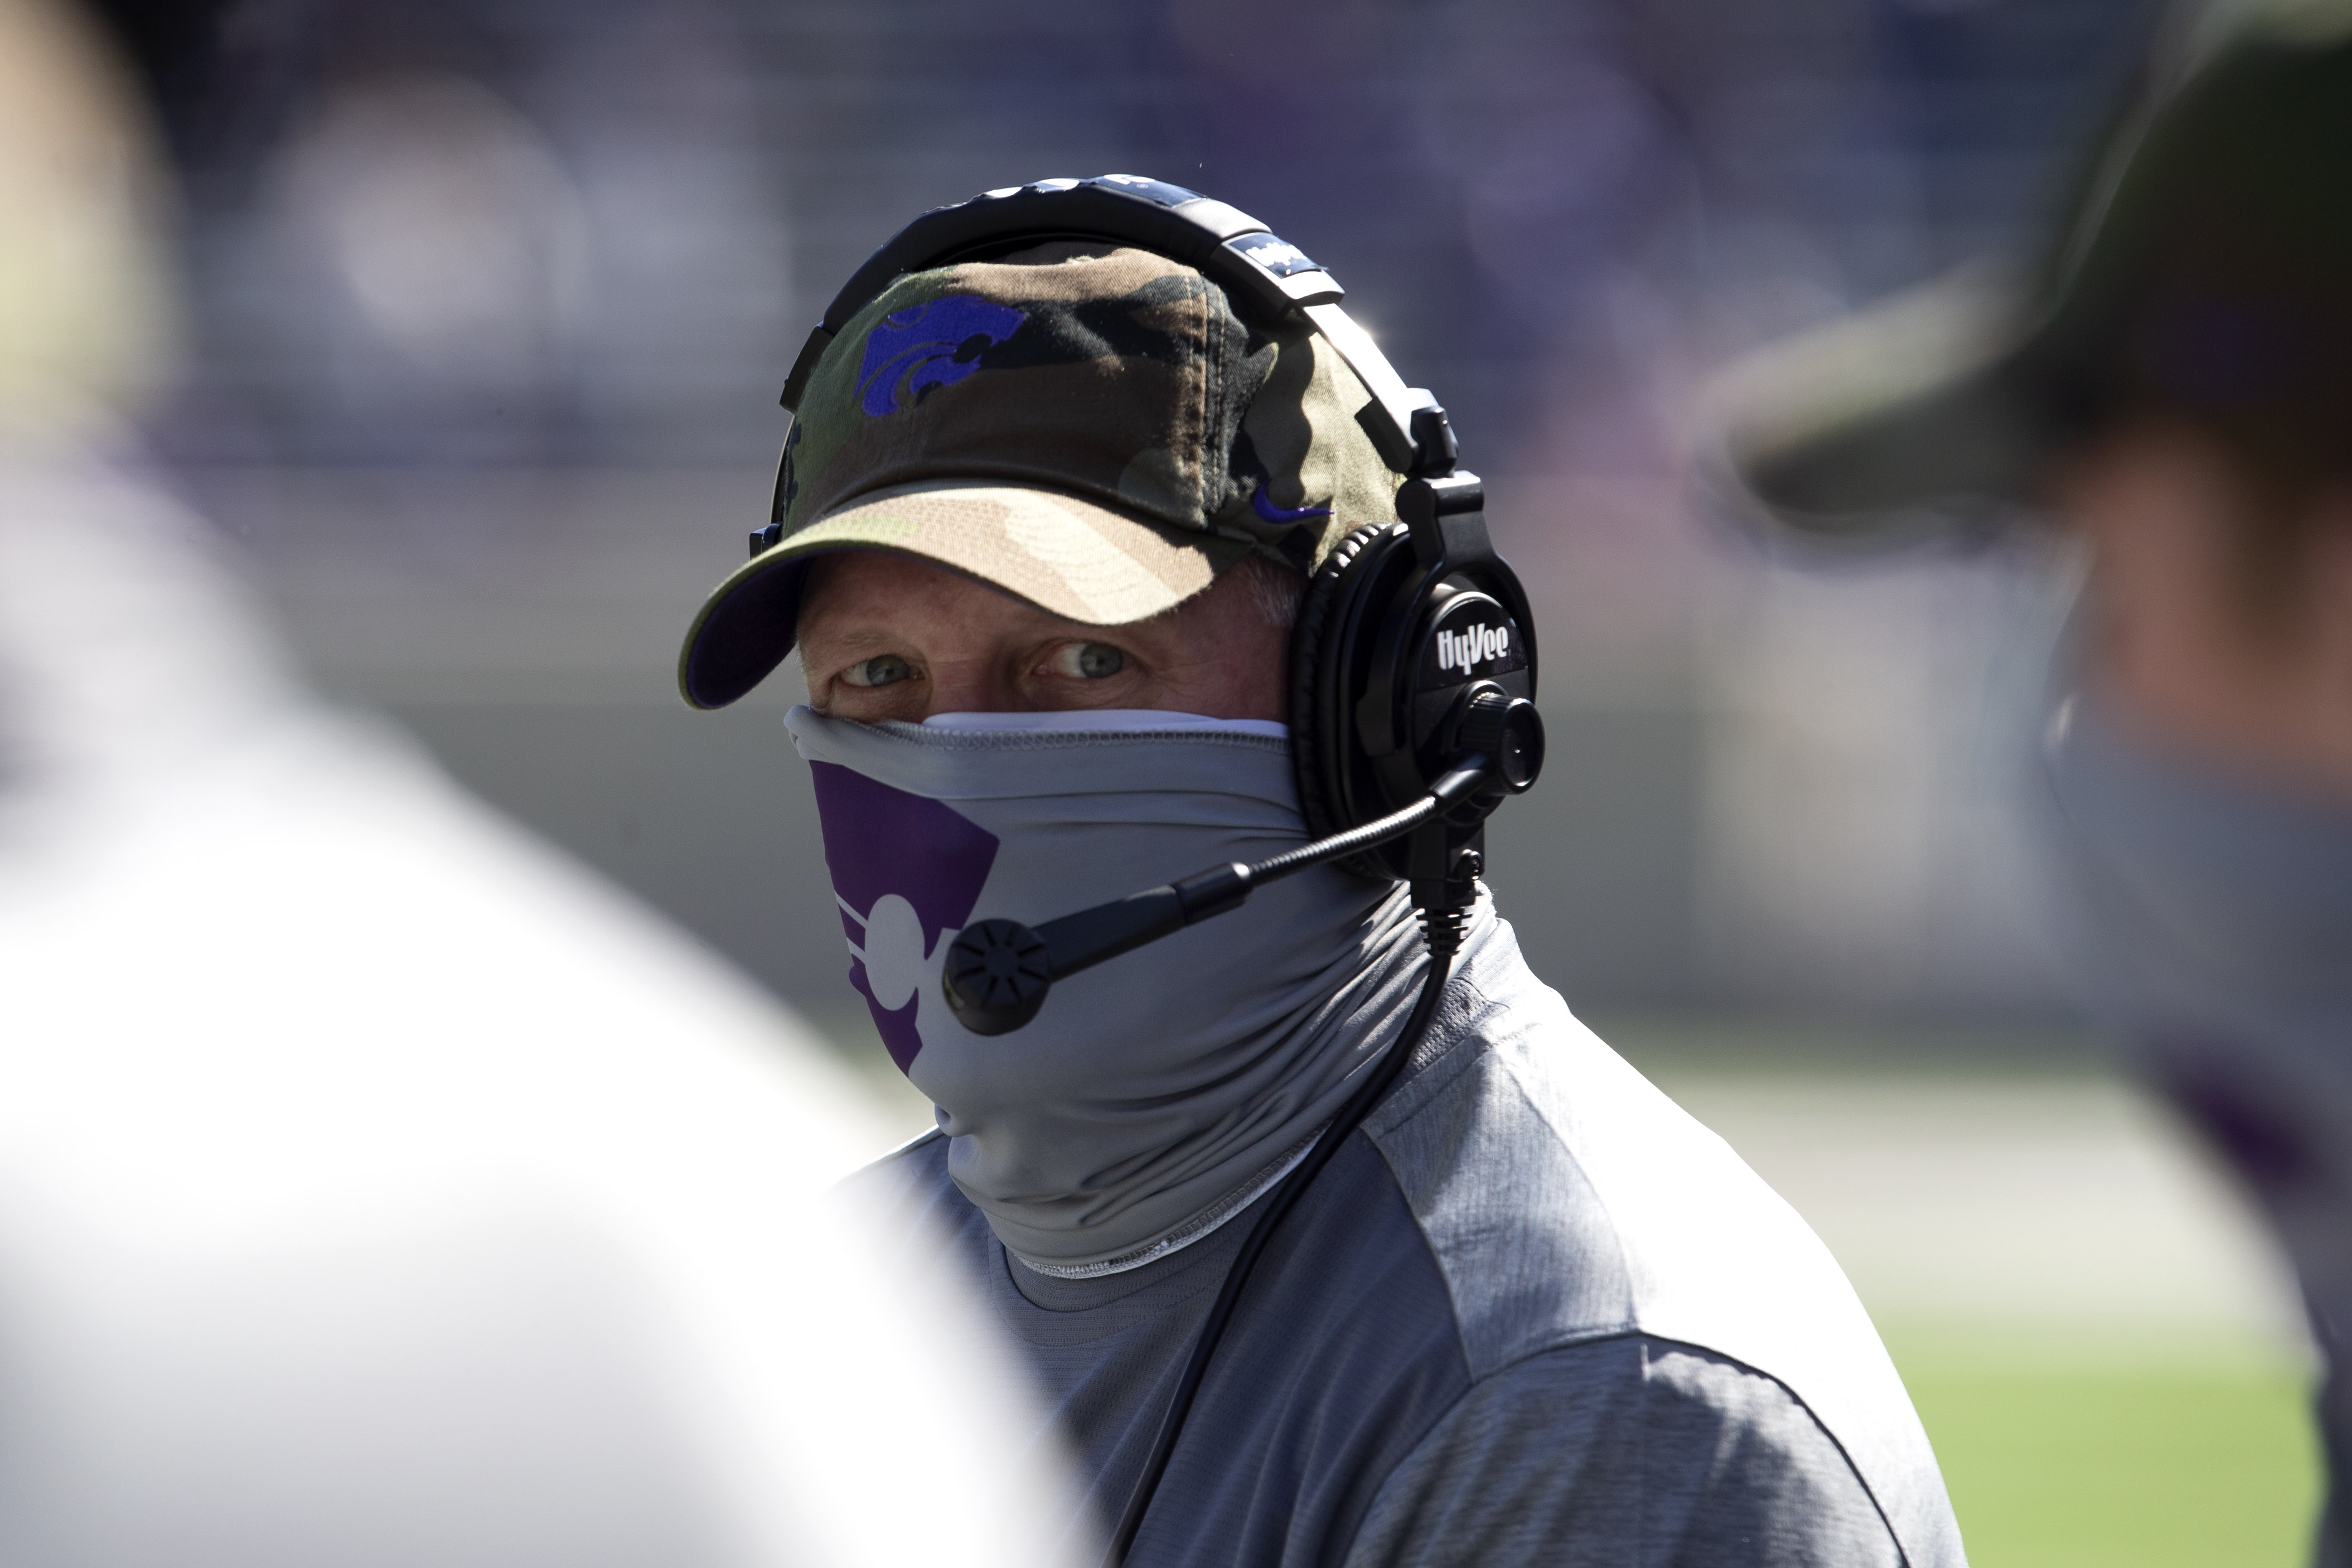 NCAA Football: Kansas State Wildcats head coach Chris Klieman proved Saturday that he has an edge that K-State desperately needs in order to consistently compete on the big stage.